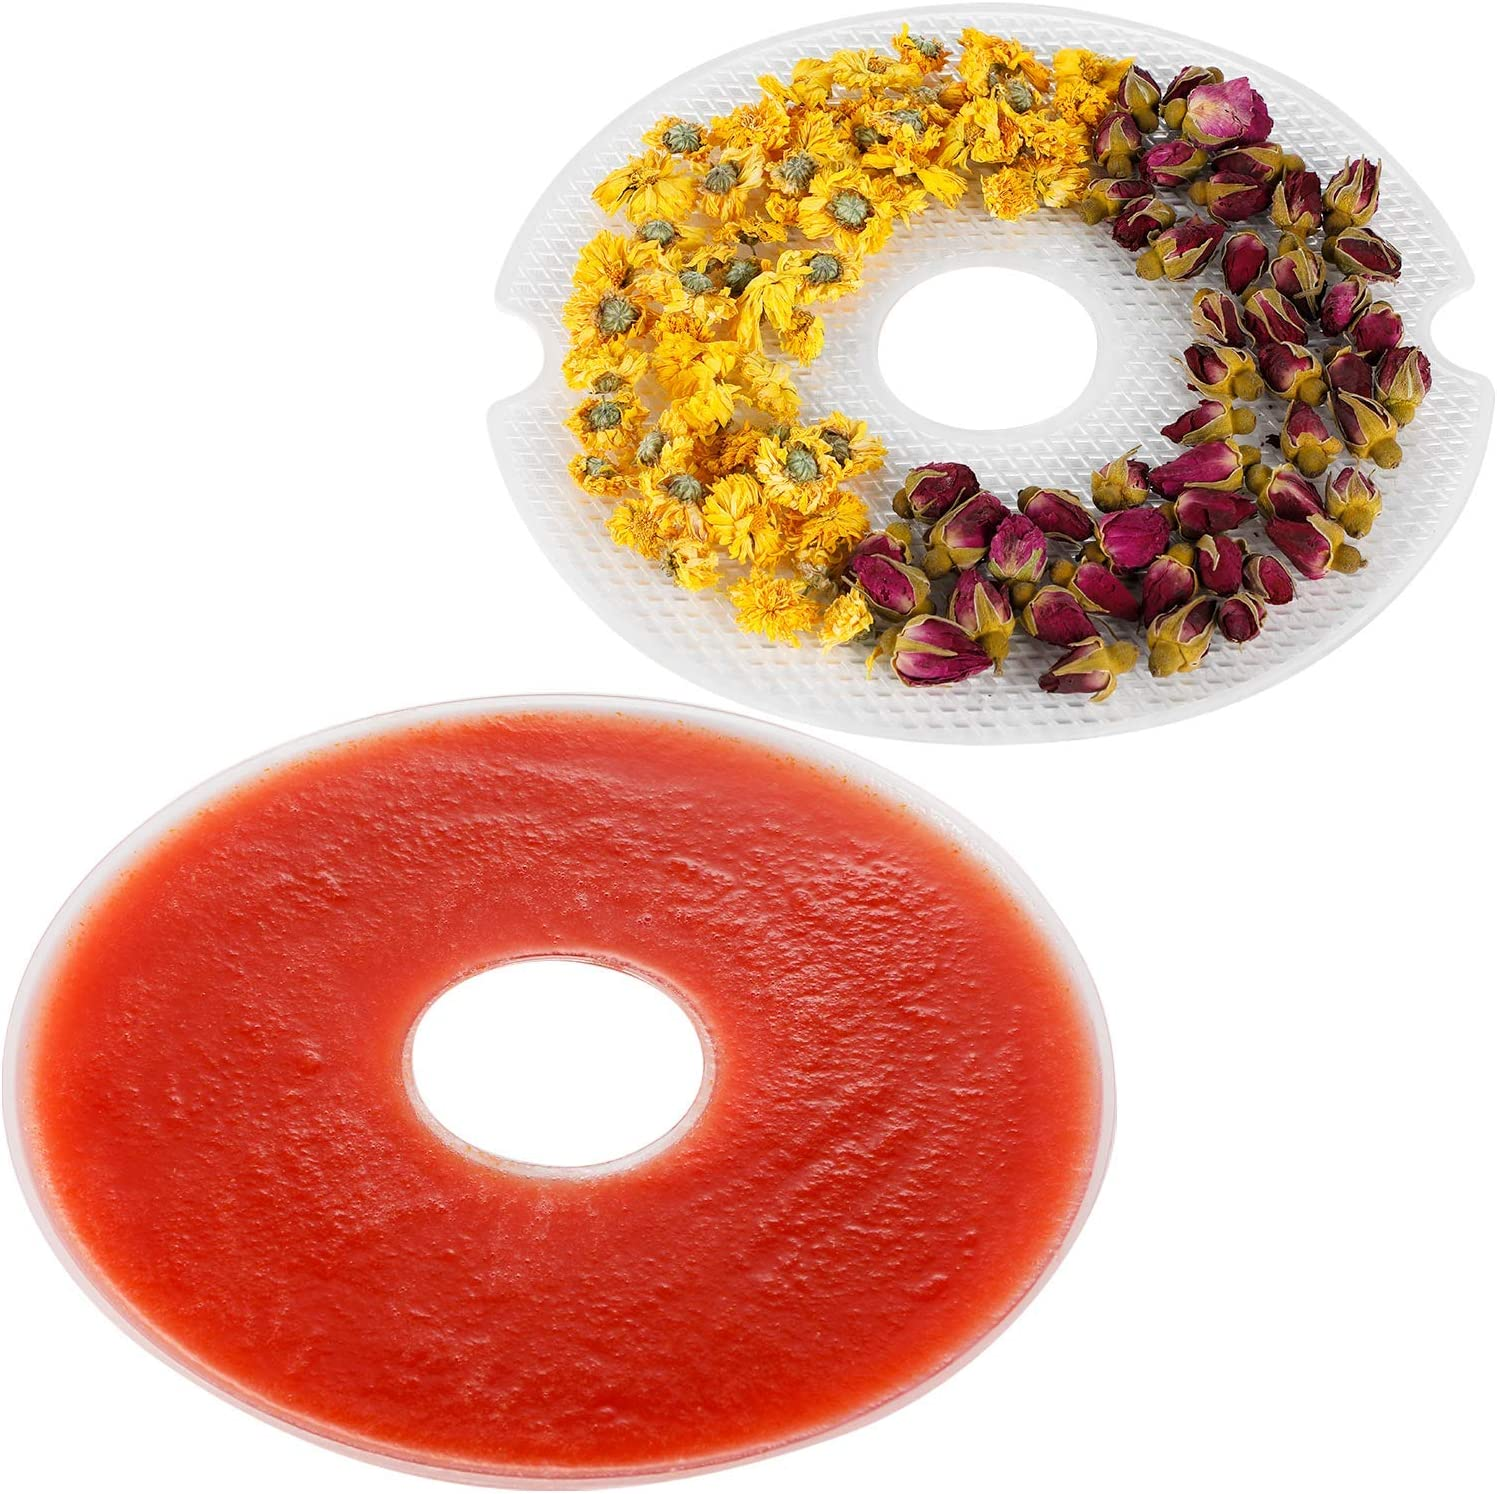 Elechomes Round Fruit Roll Sheet and Mesh Screen for UH0401 Food Dehydrator 10